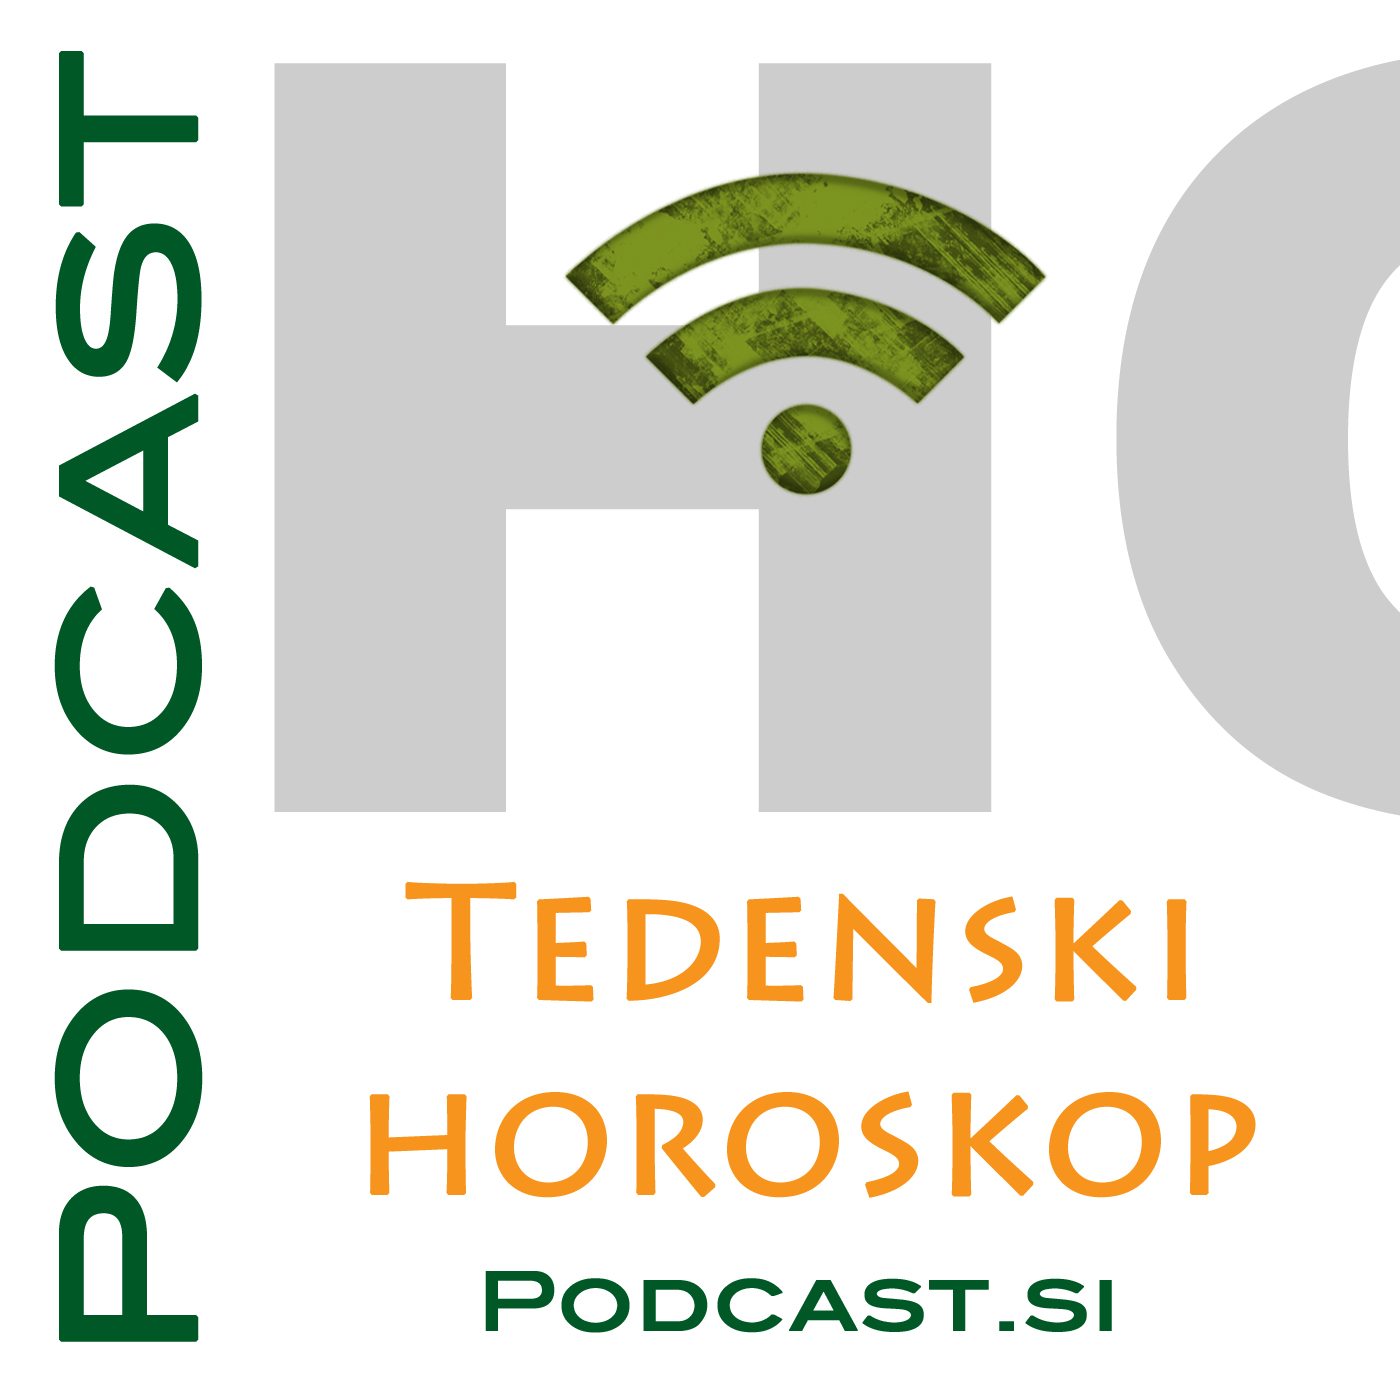 Podcast TEDENSKI HOROSKOP – Podcast.si